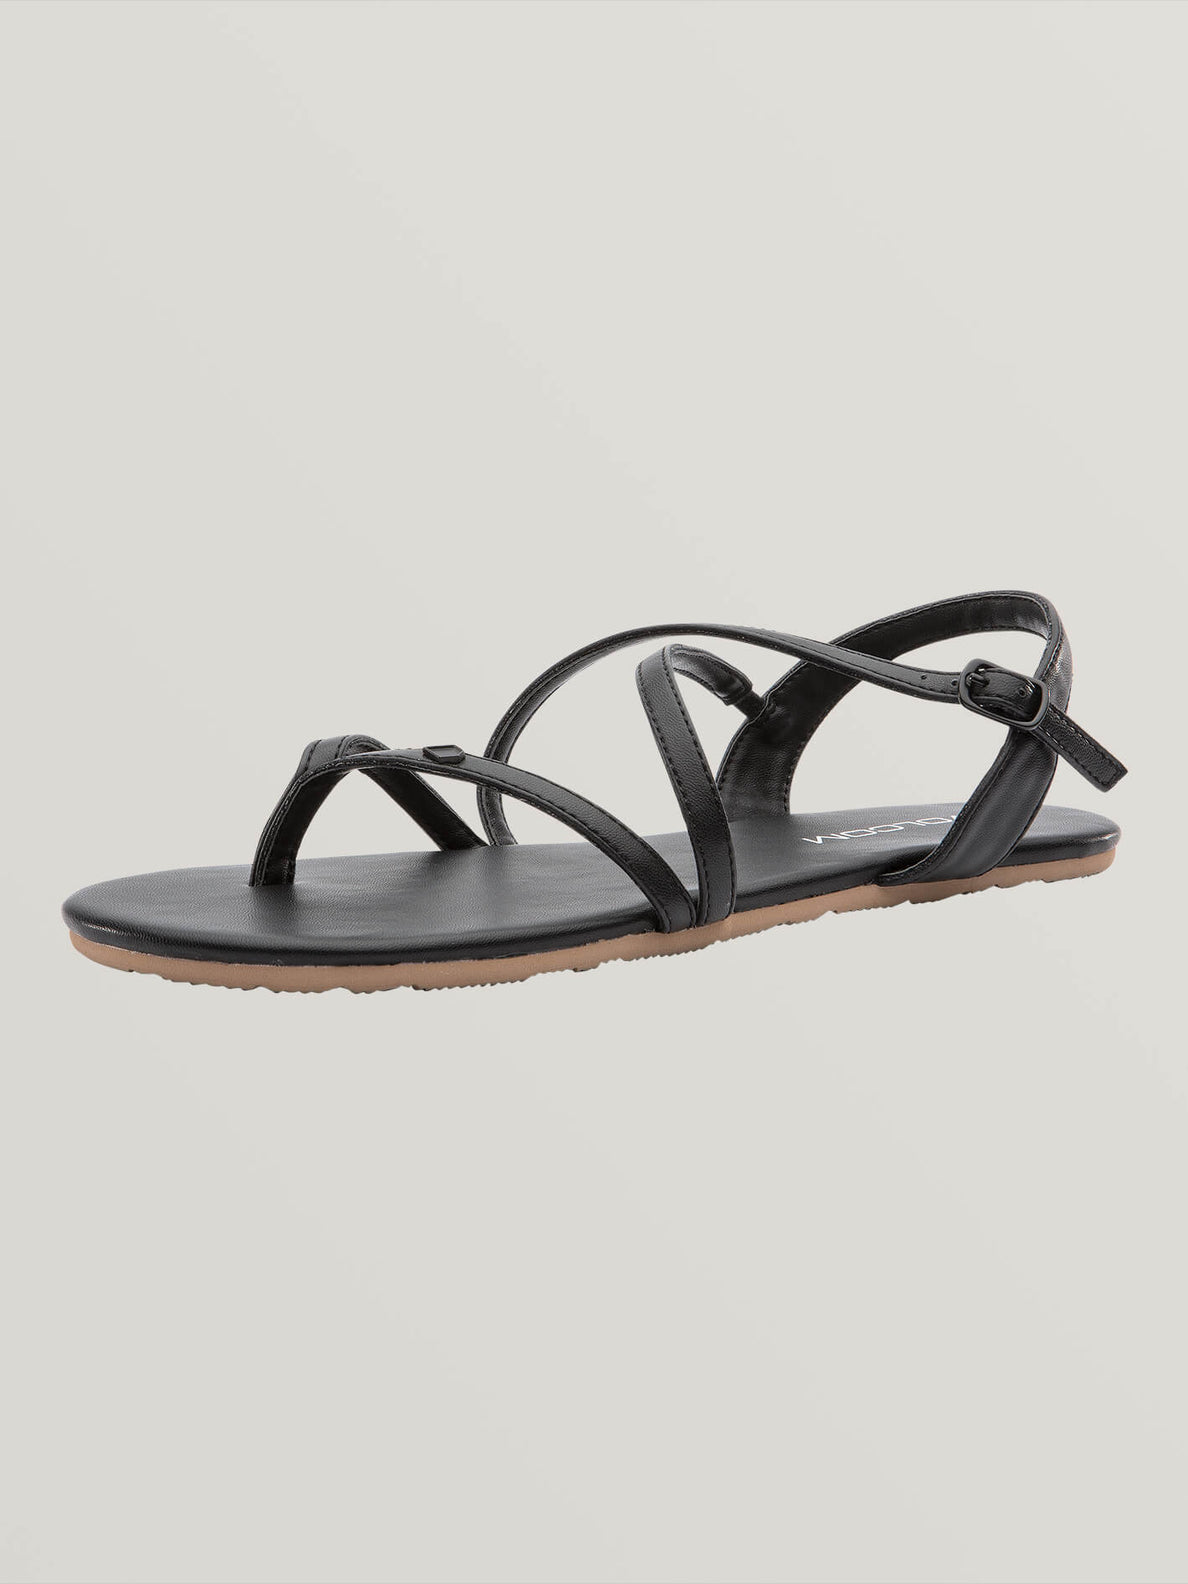 Strapped In Sandals - Black Out